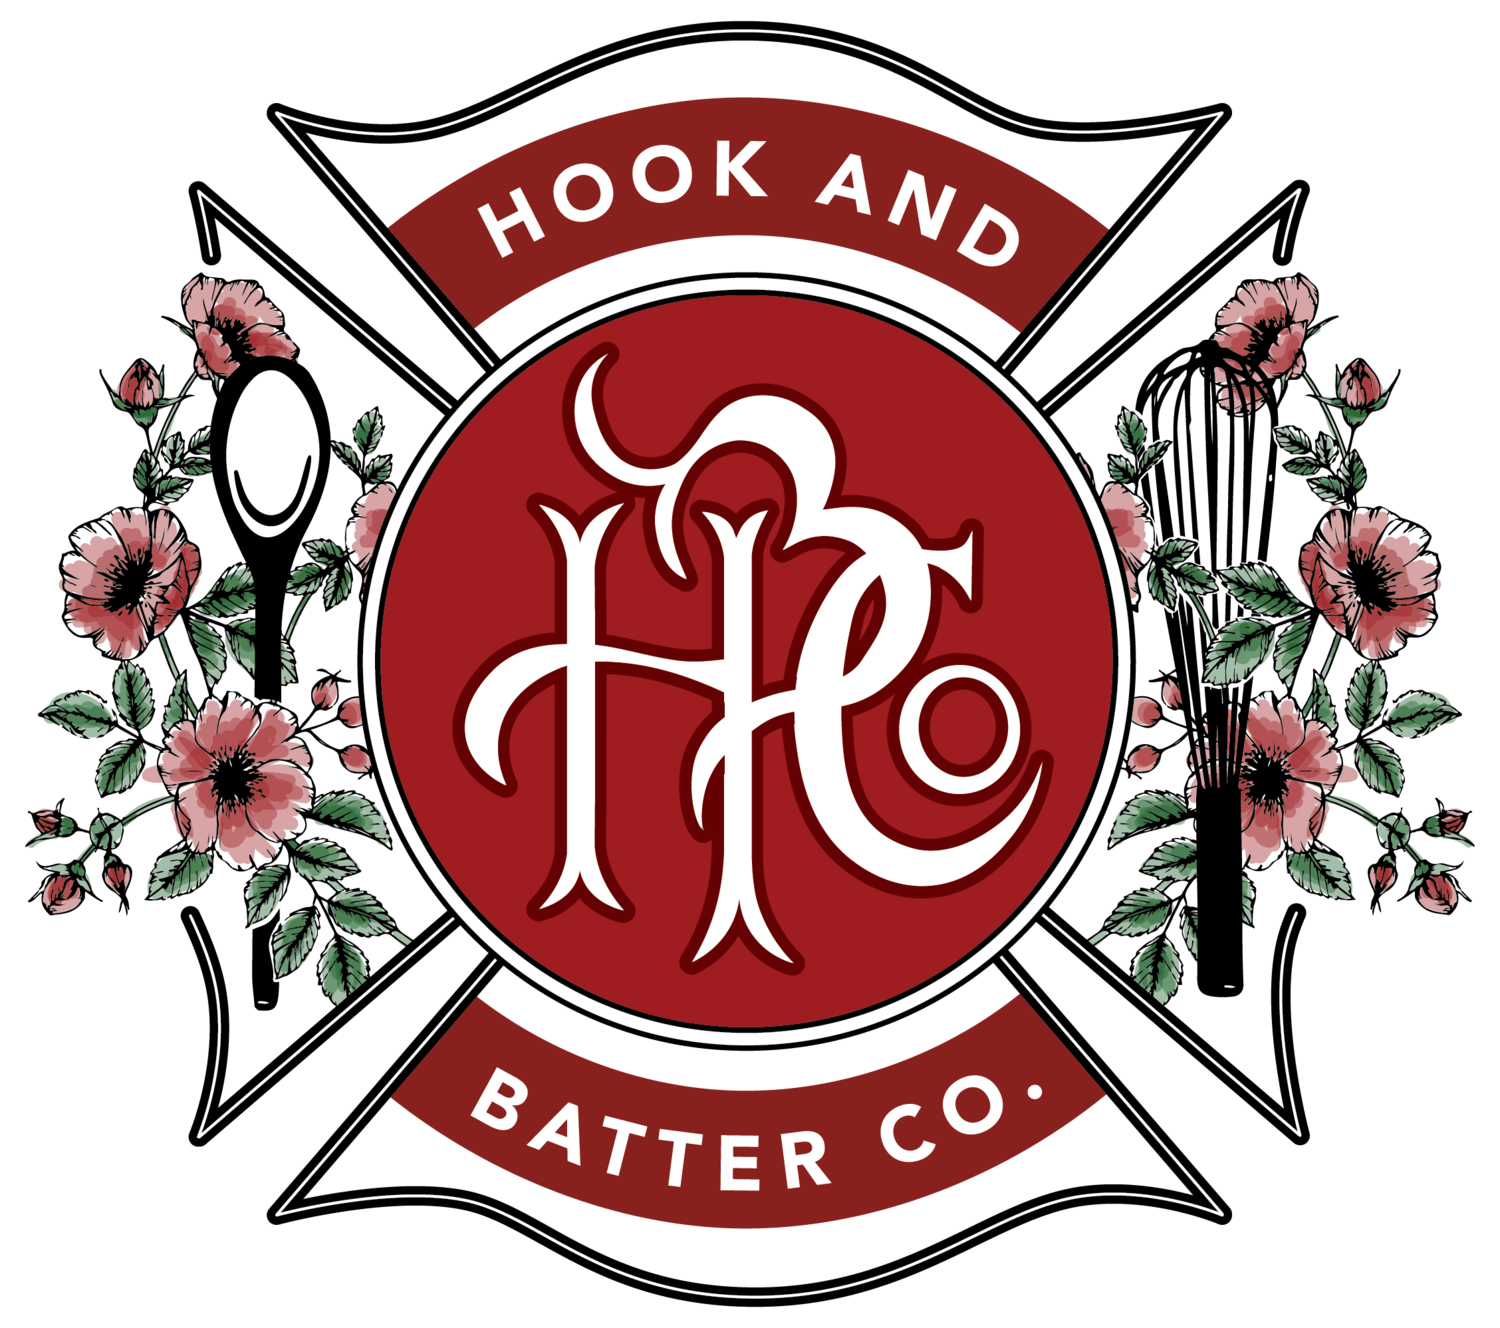 Hook & Batter Company